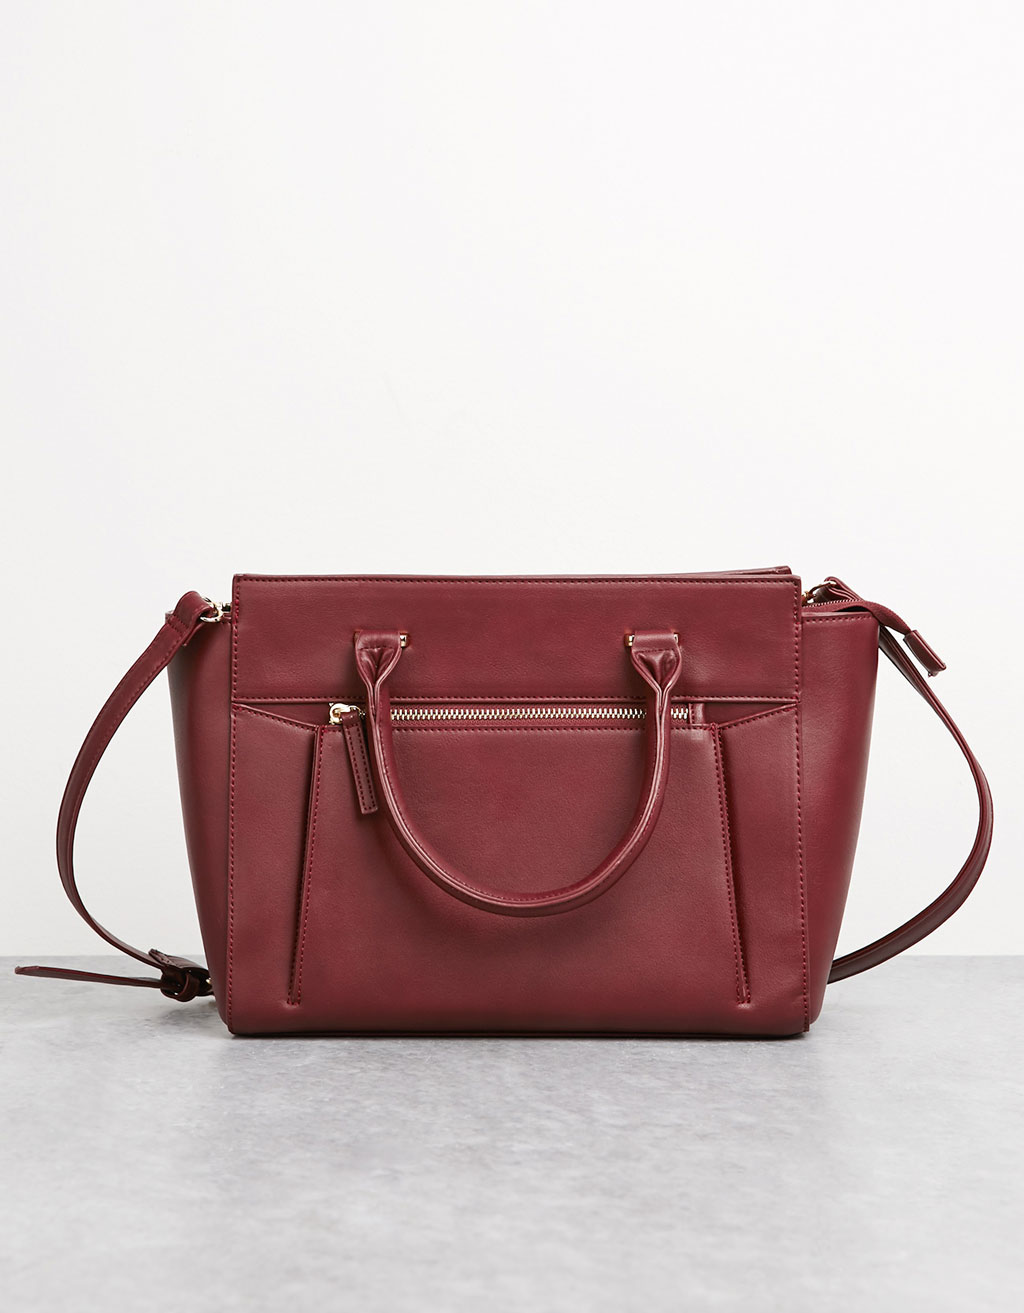 'Ladybag' bag